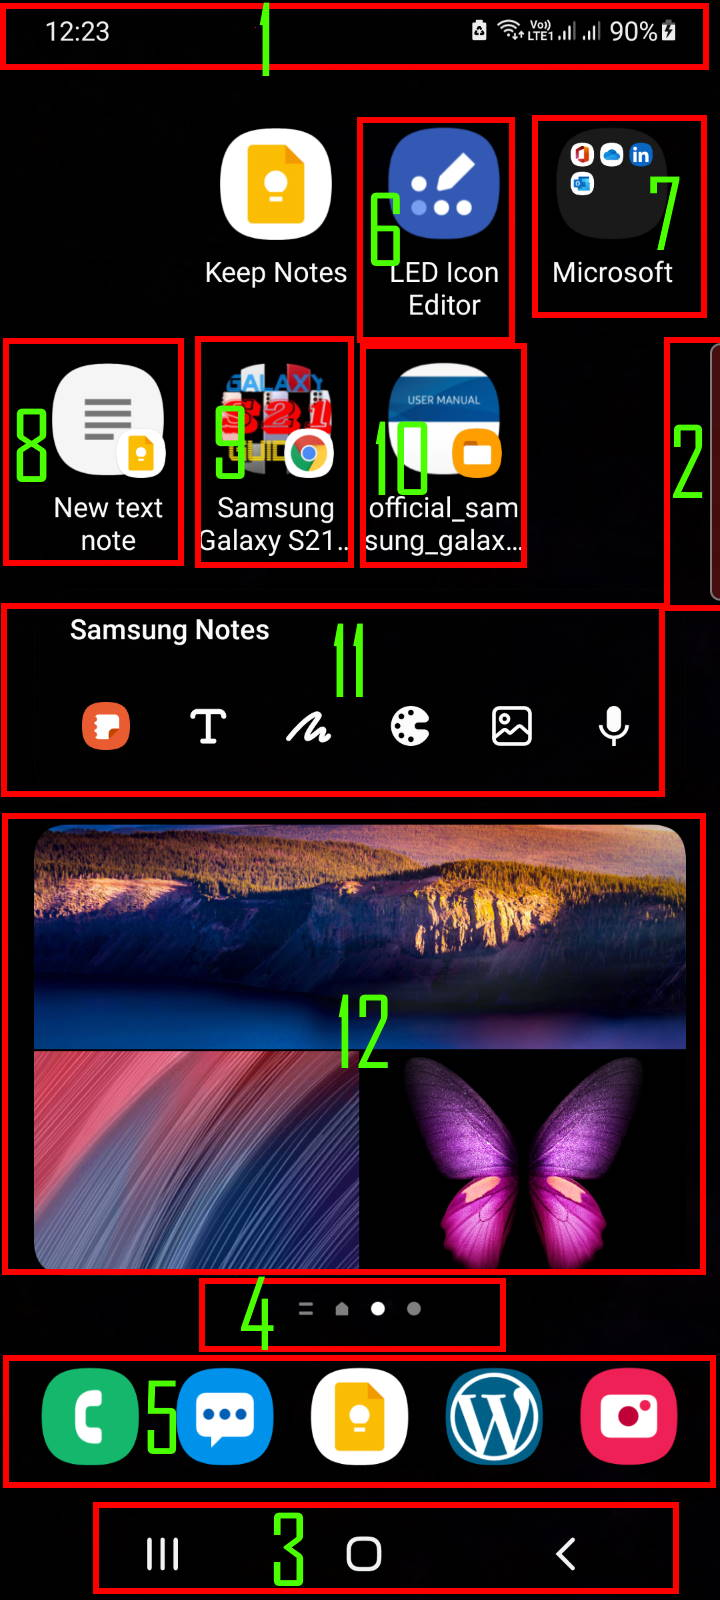 items on Galaxy S21 Home screen